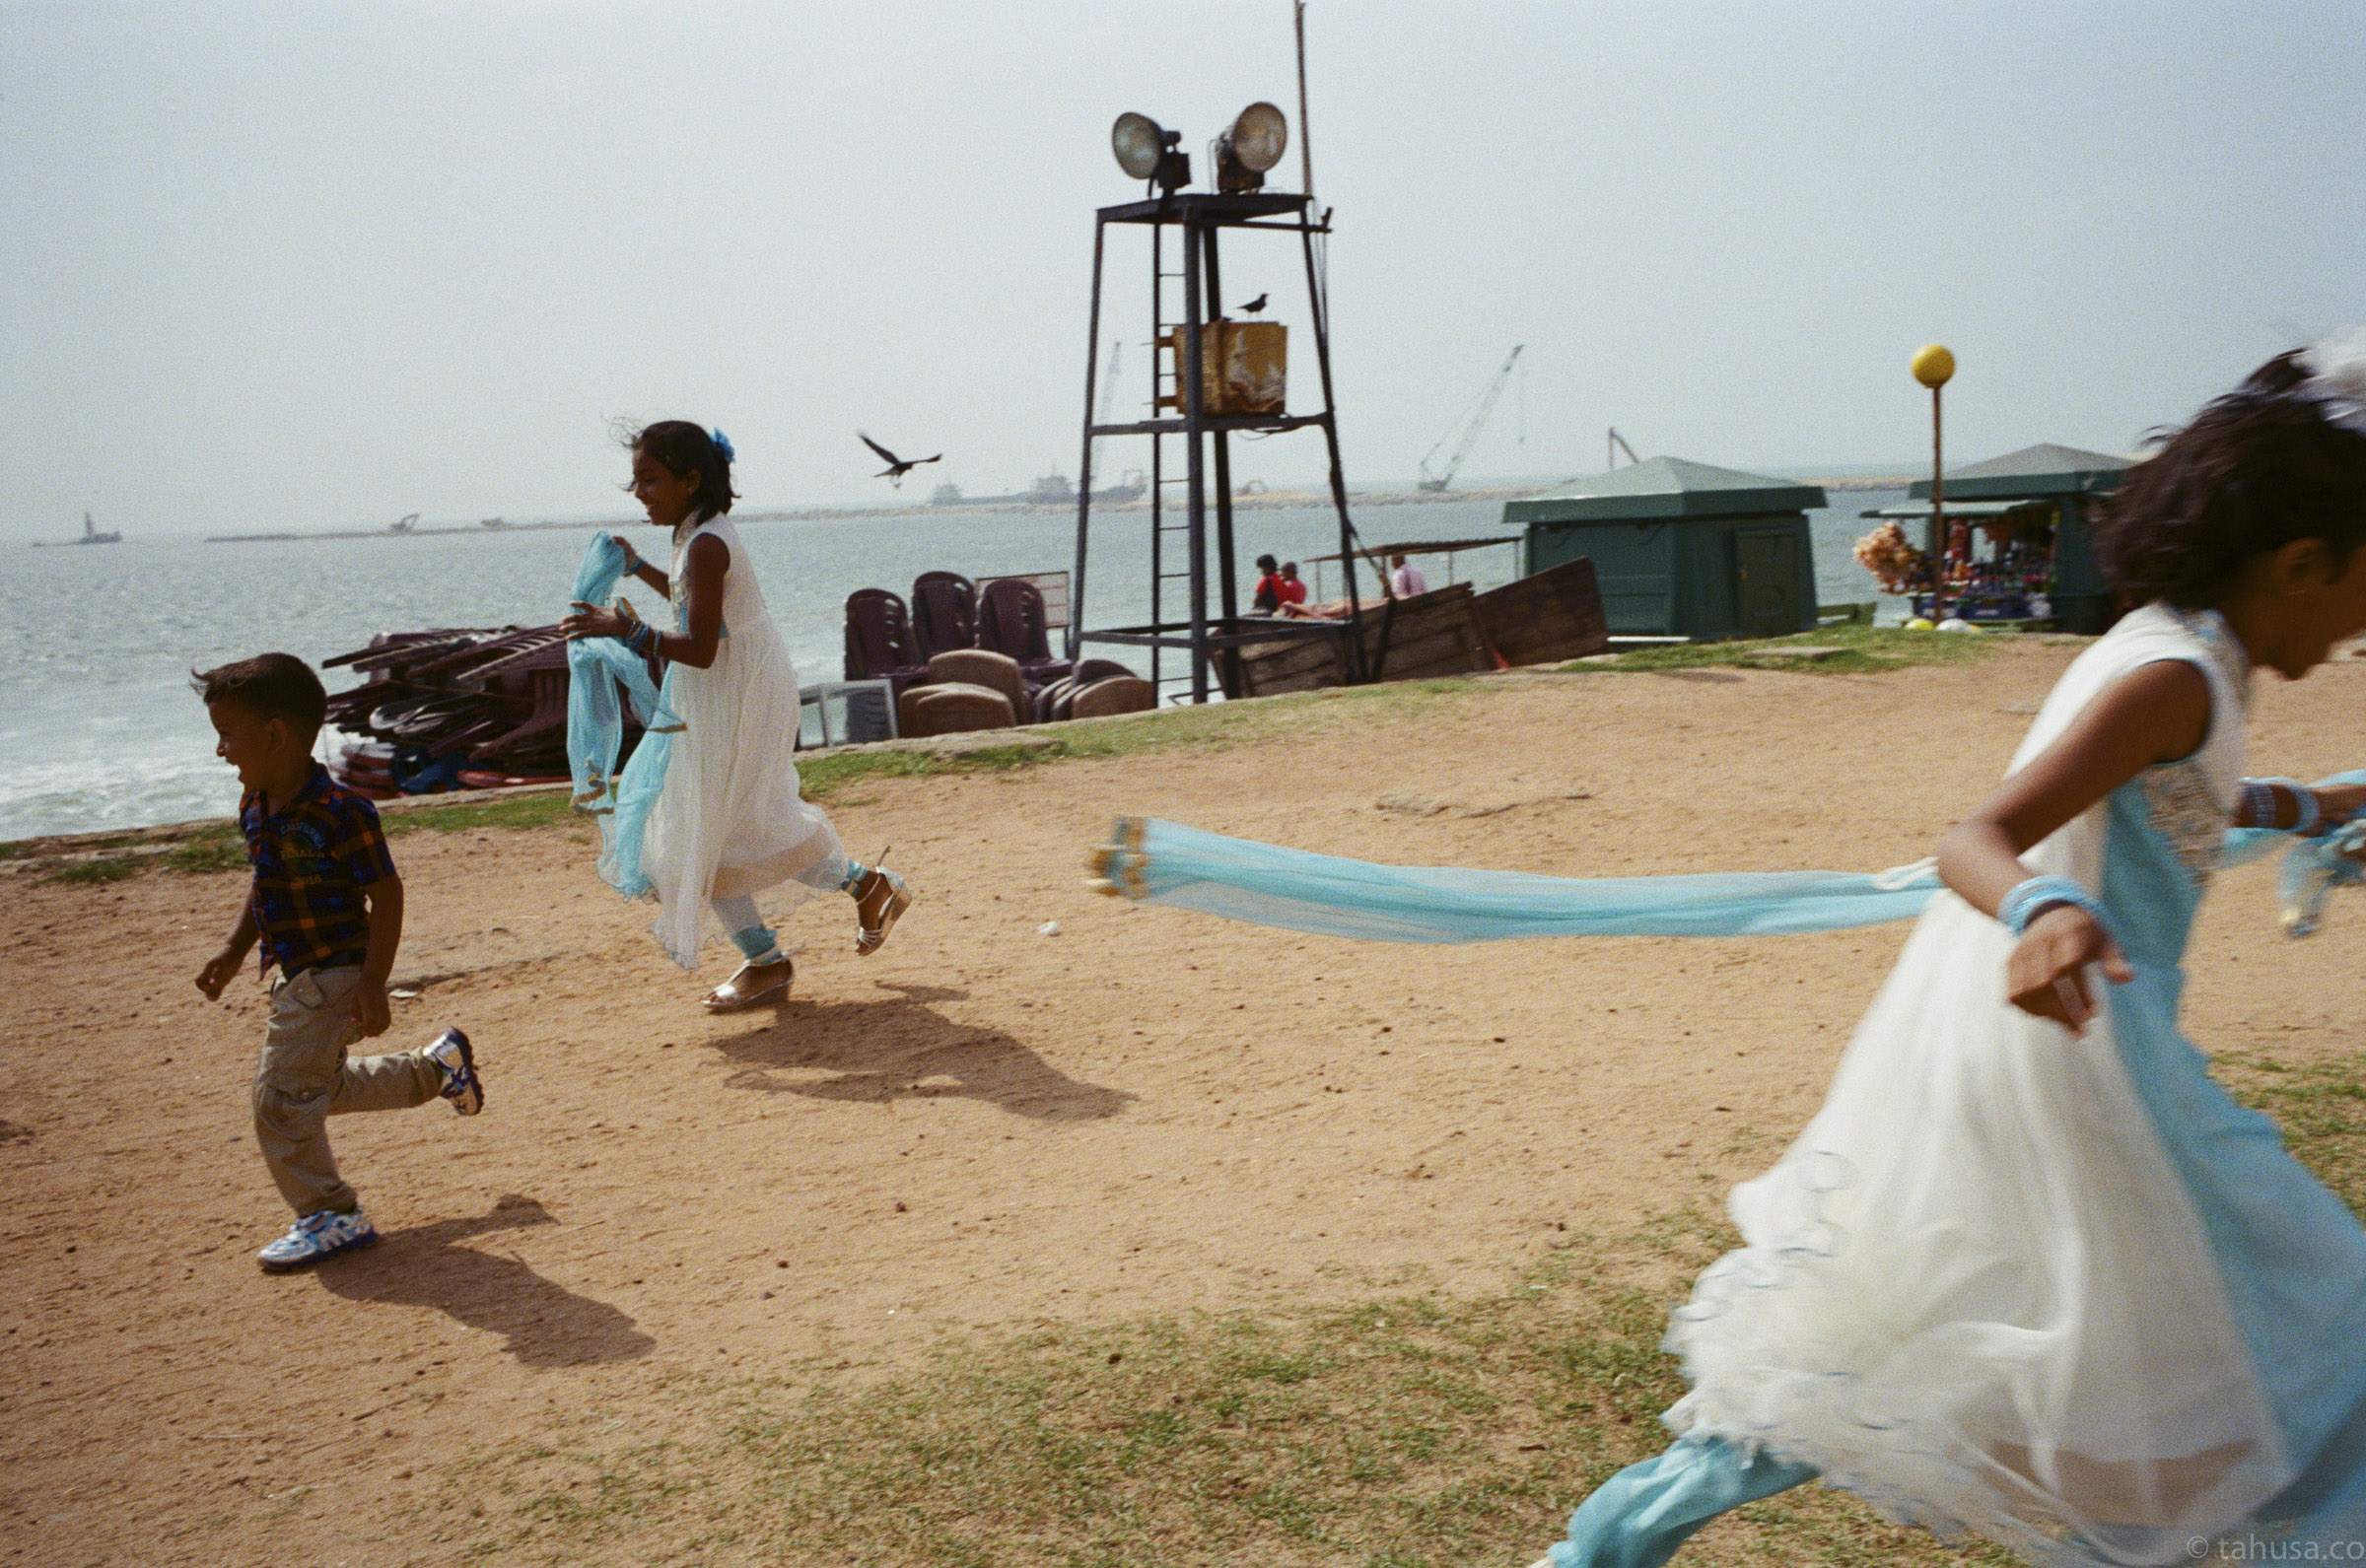 children-chasing-around-in-waterfront-documentary-in-sri-lanka-colombo-galle-face-green-local-life-kodak-supergold-400-iso400-Leica-summilux-35mm-f1.4-FLE-ASPH